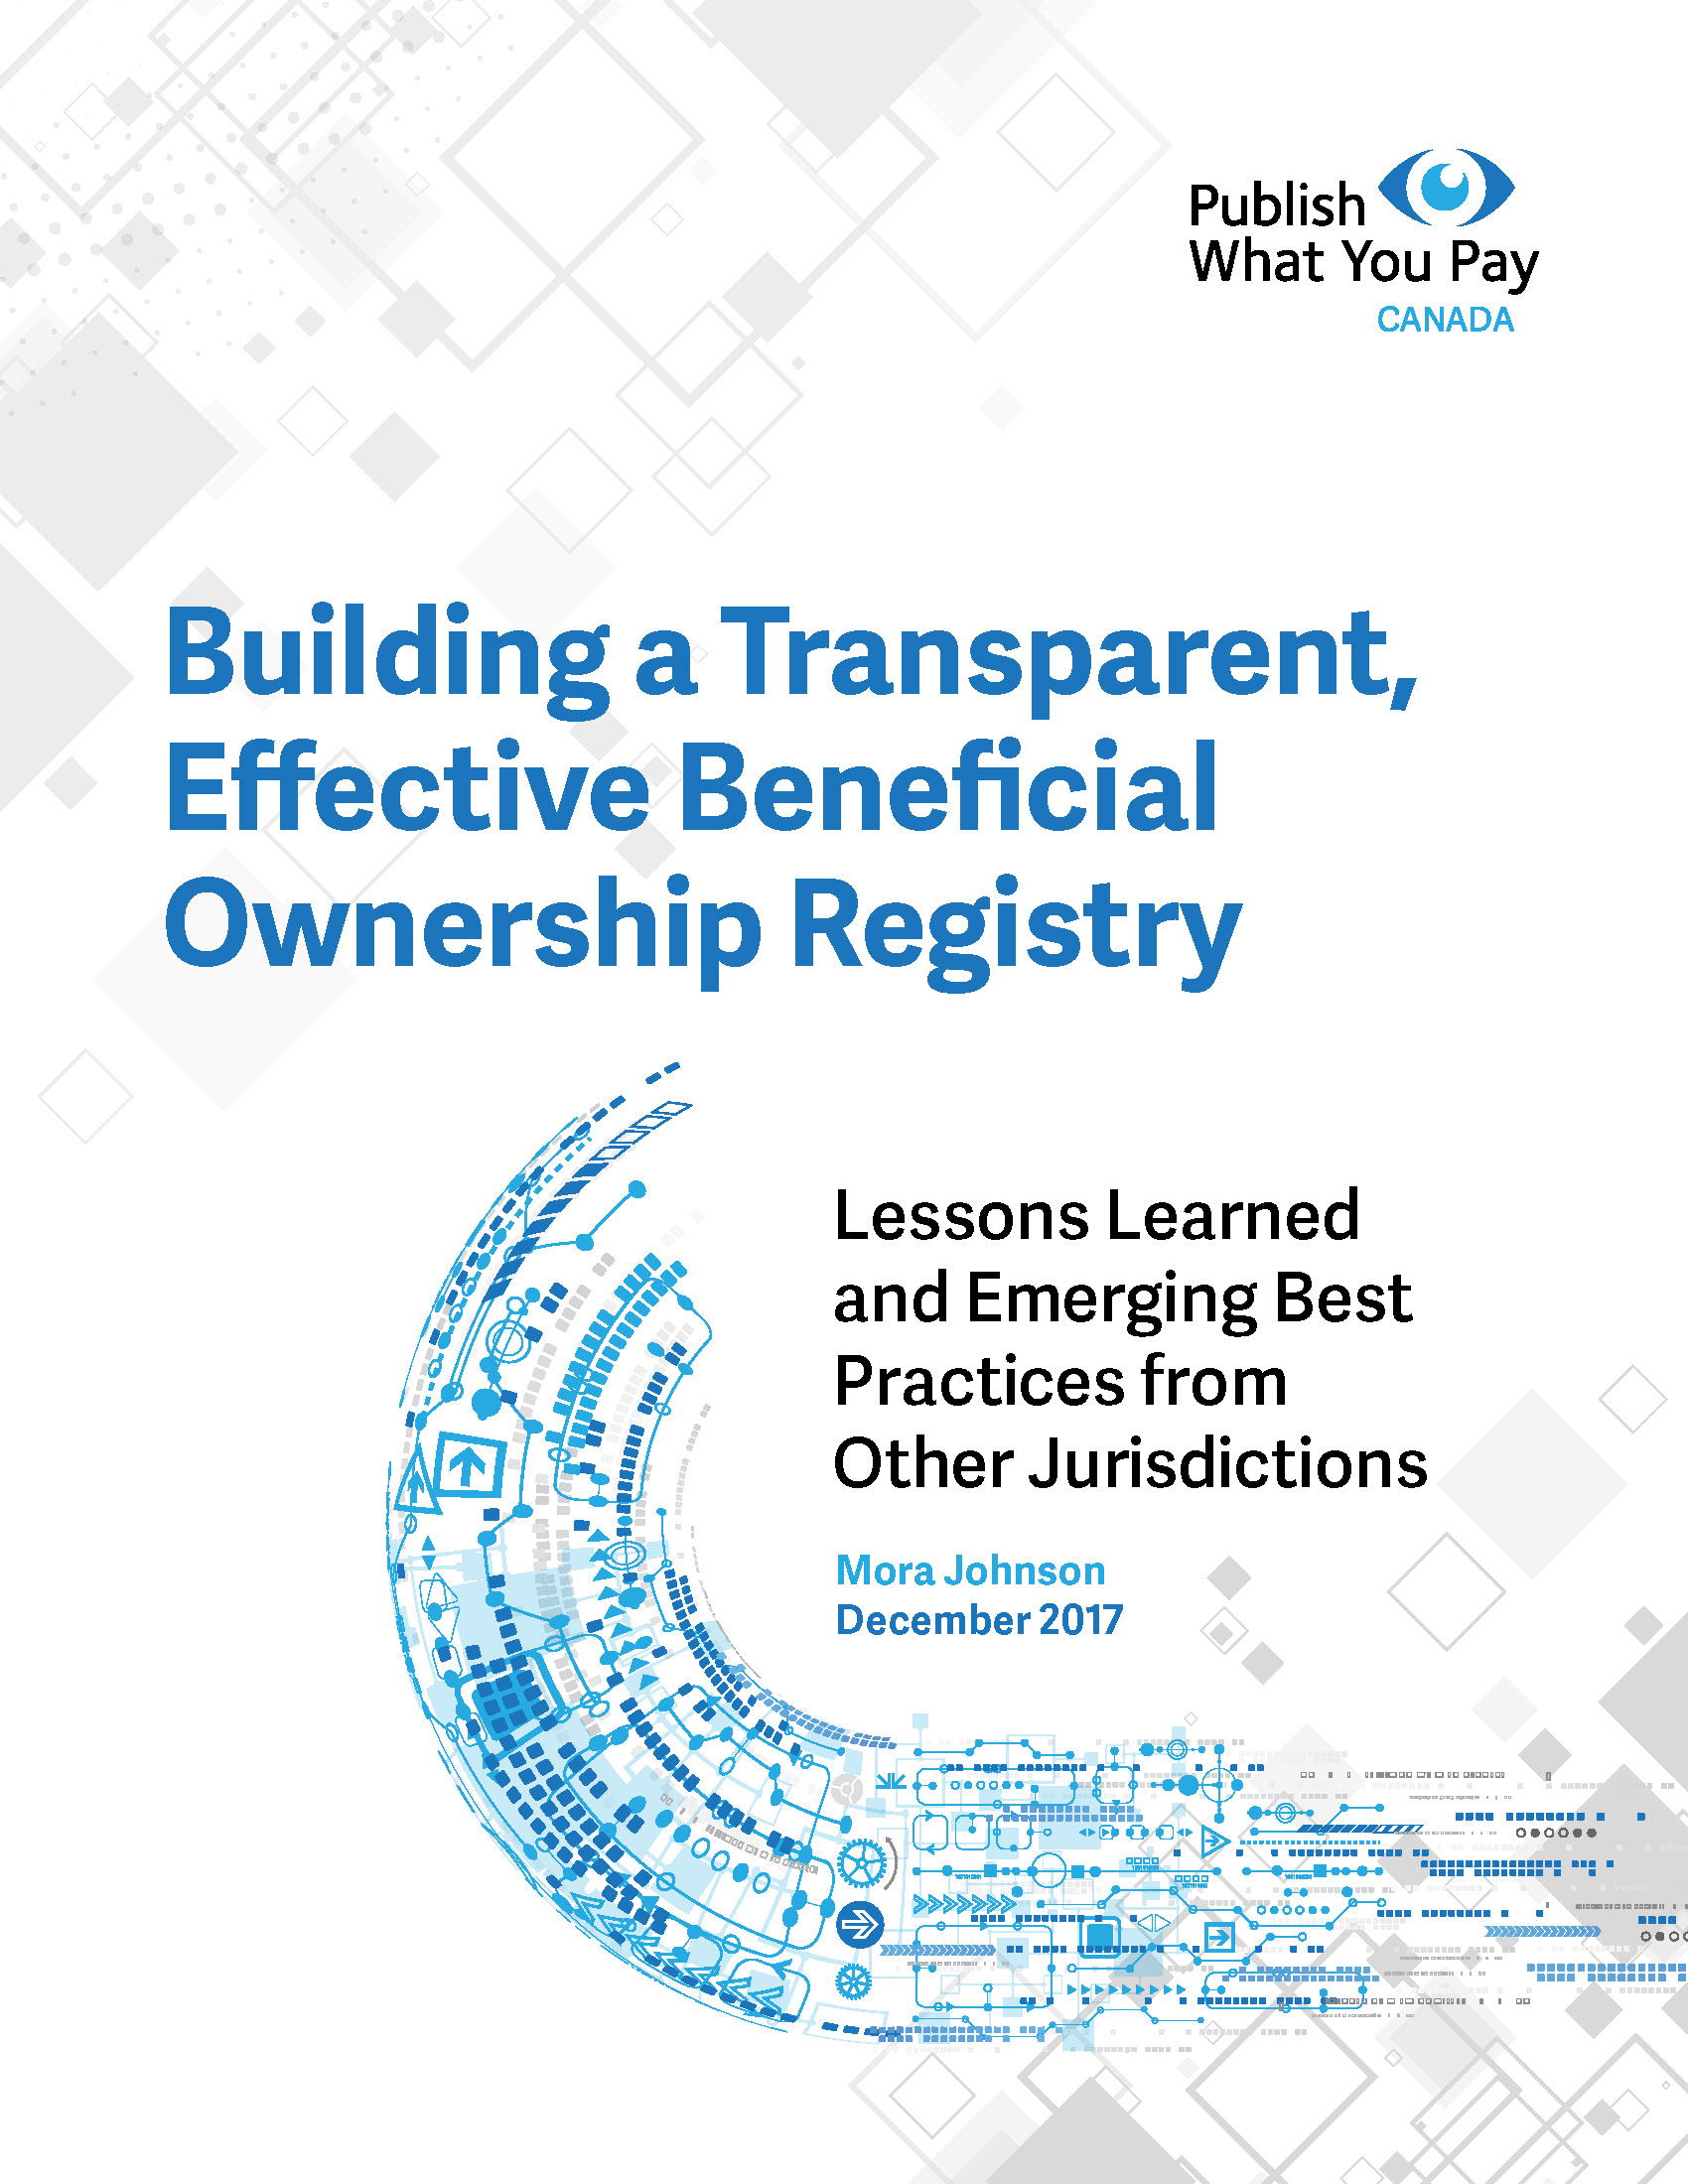 Building a Transparent, Effective Beneficial Ownership Registry - Publish What You Pay Canada, 2017